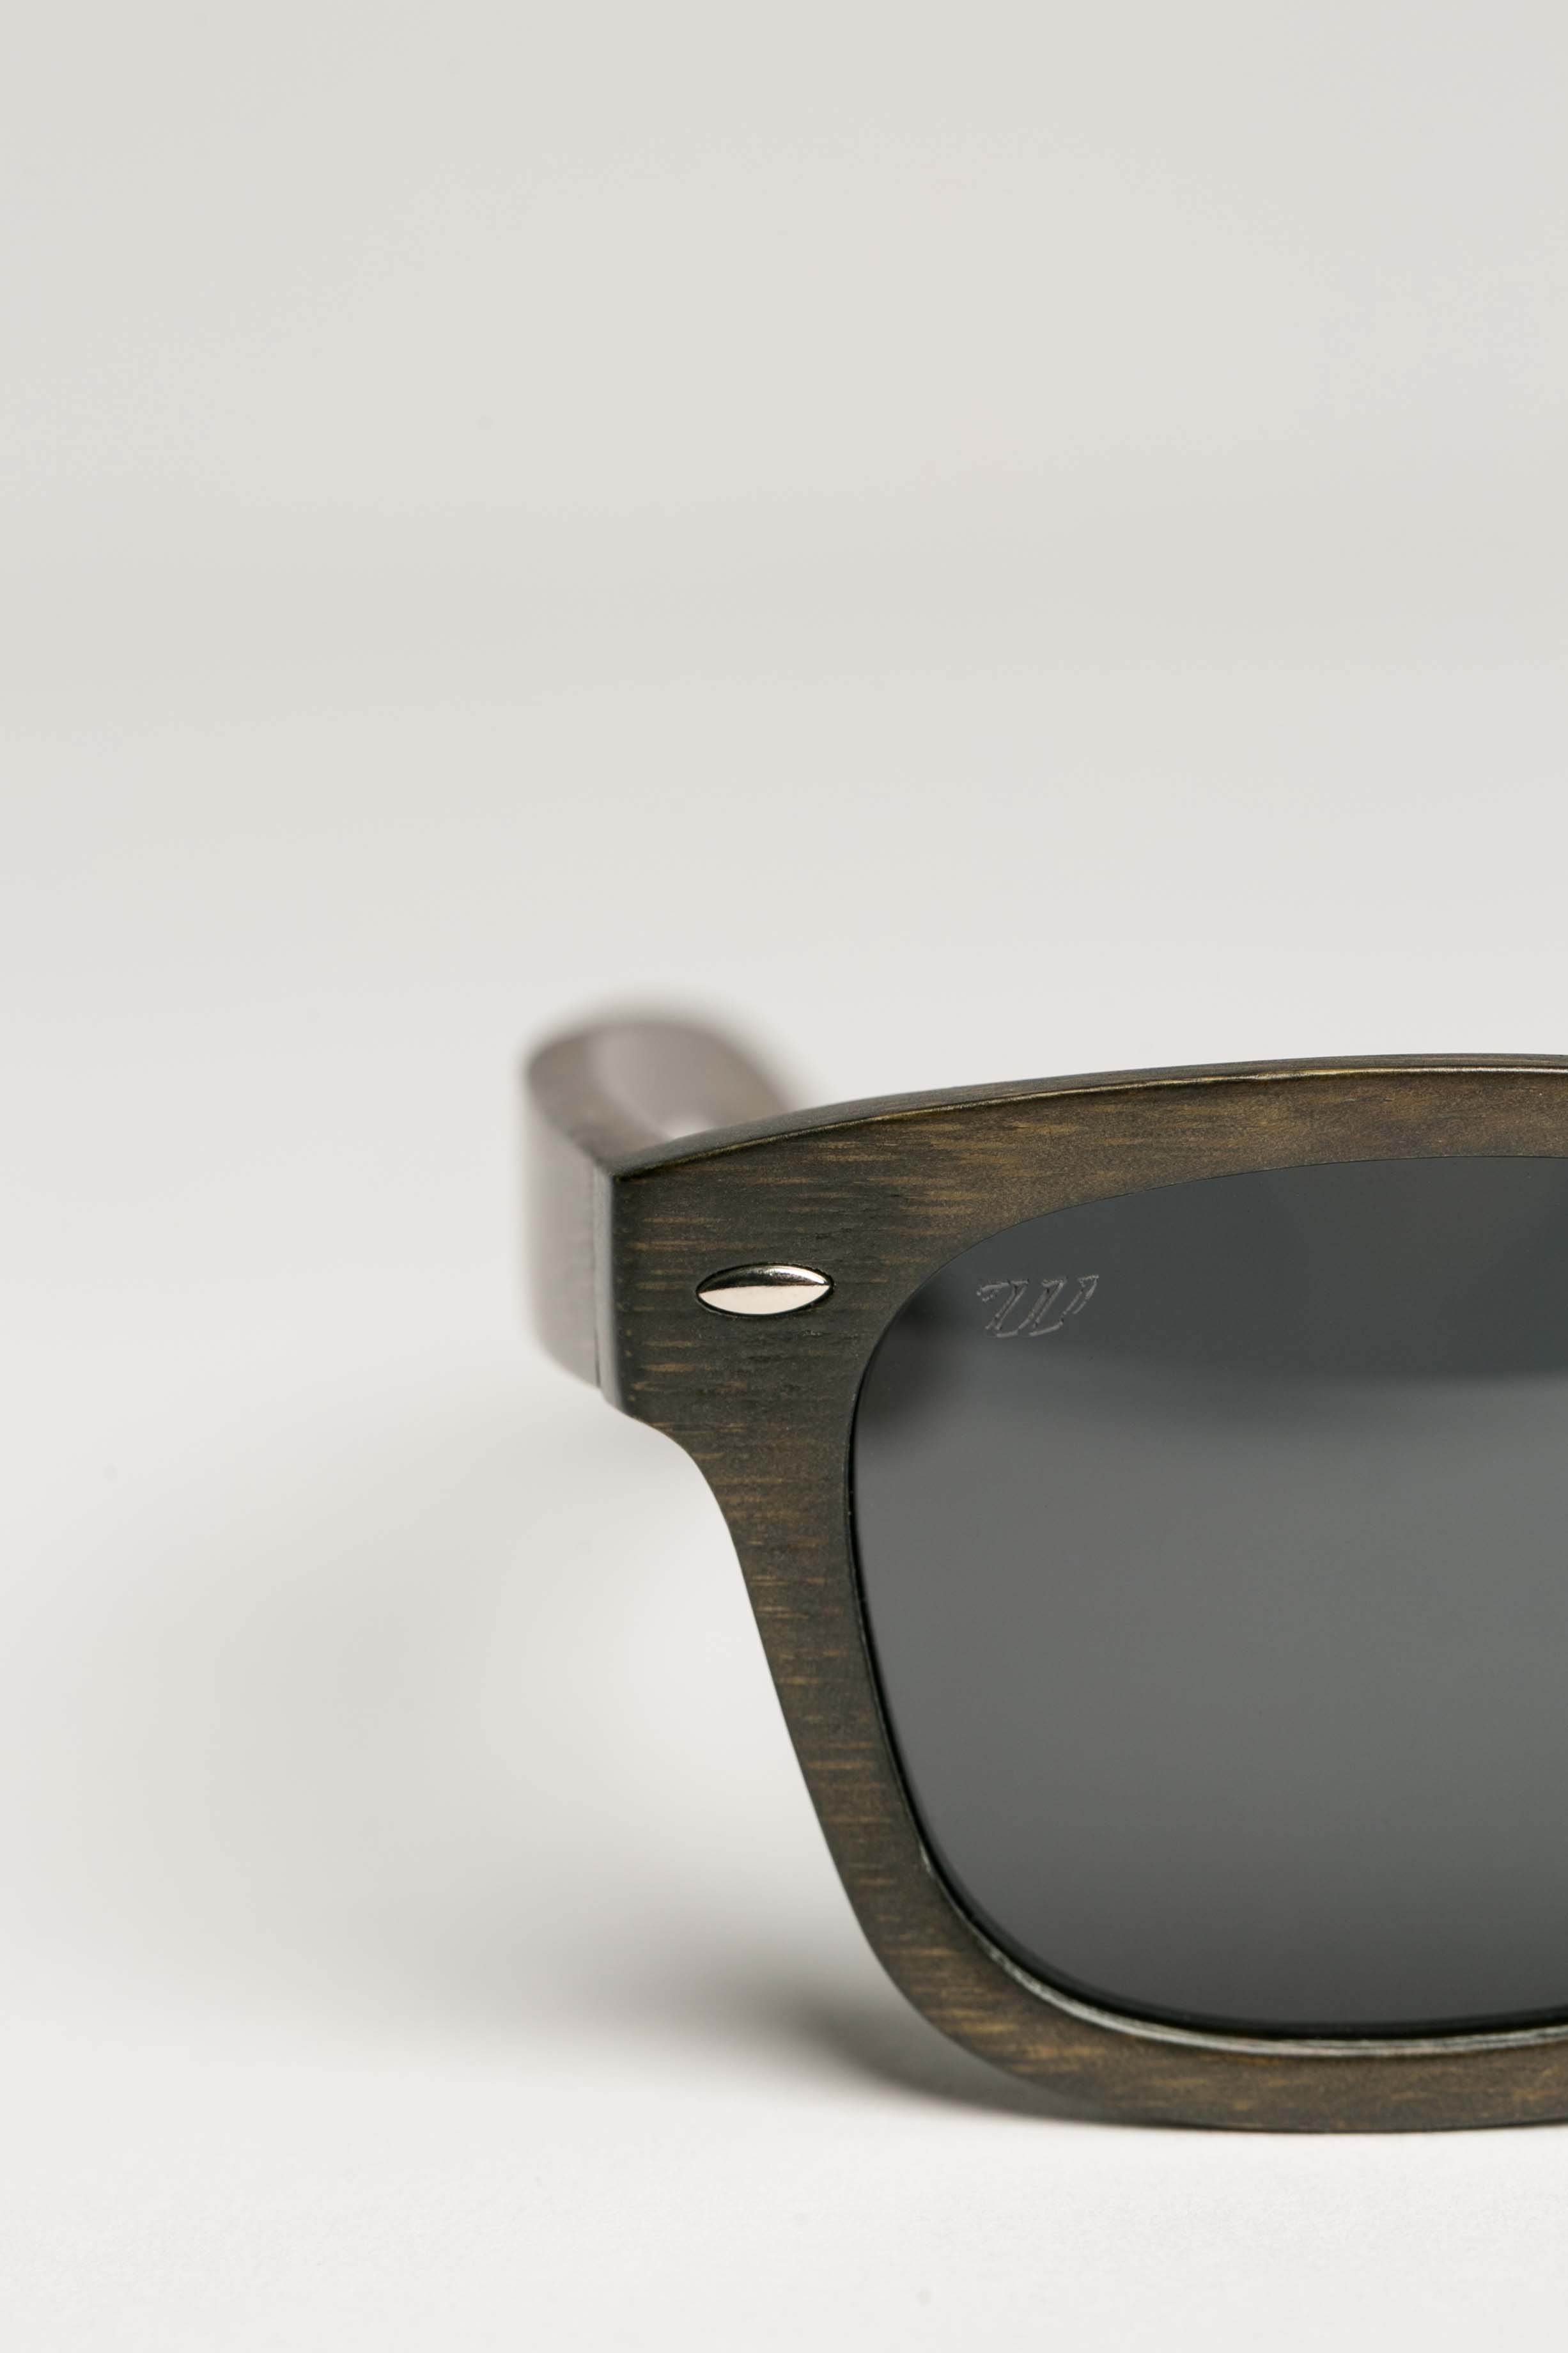 Woowerds Wooden sunglasses photographed by Dave Lamarand